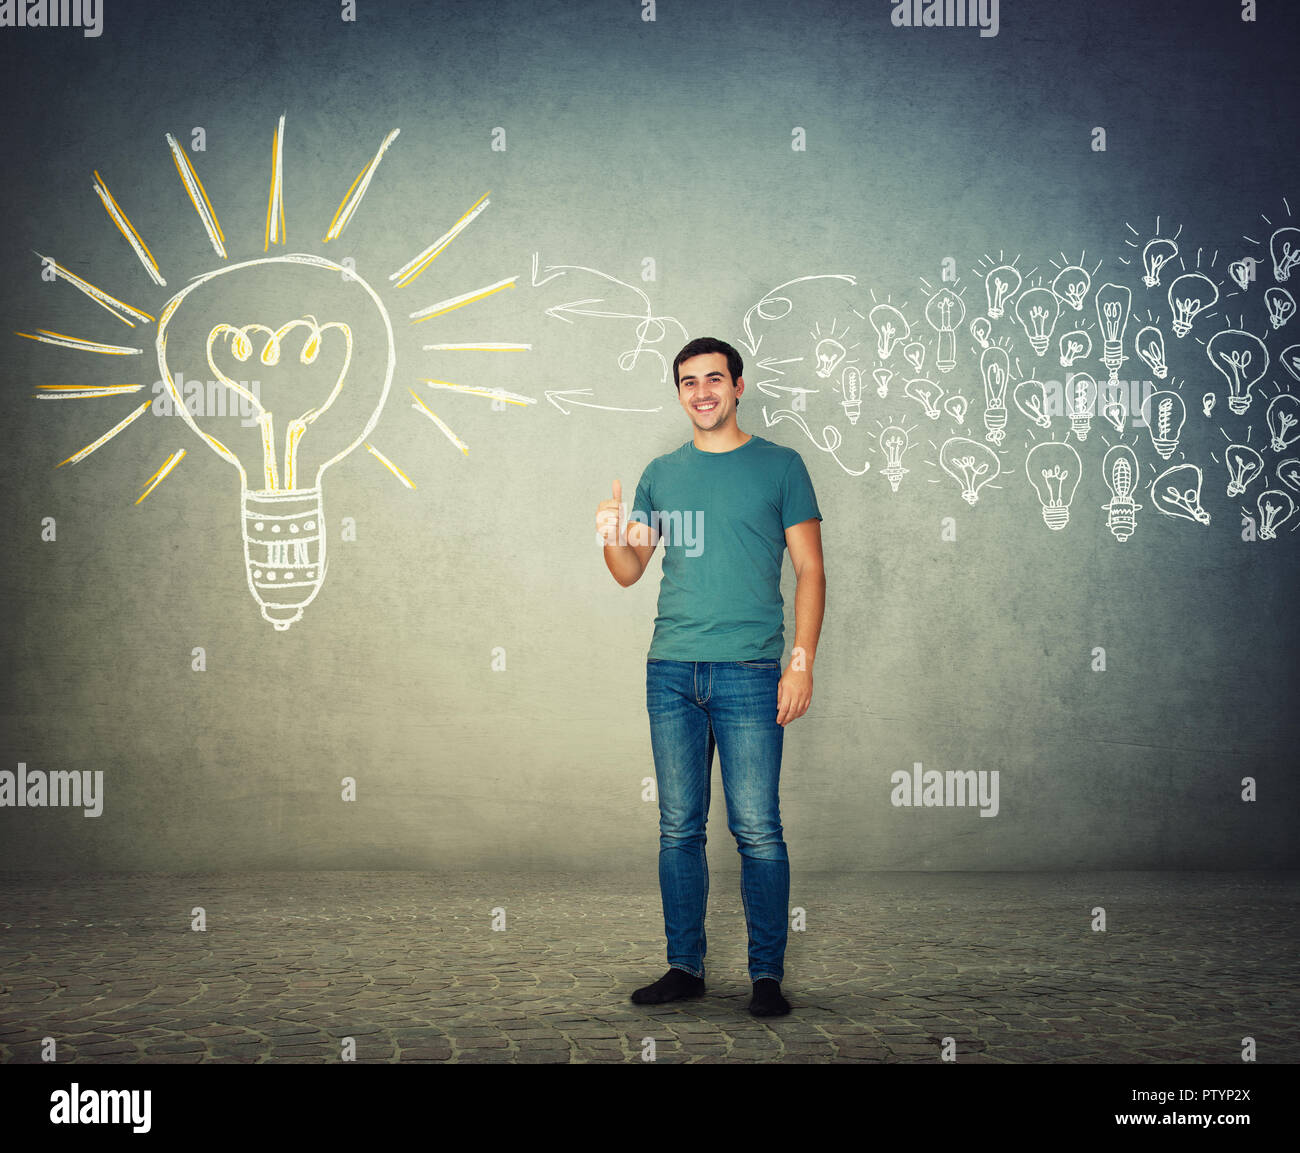 Full length portrait of smiling casual man showing thumb up as like sign. Business concept pensive boy gathering ideas into a big light bulb. - Stock Image